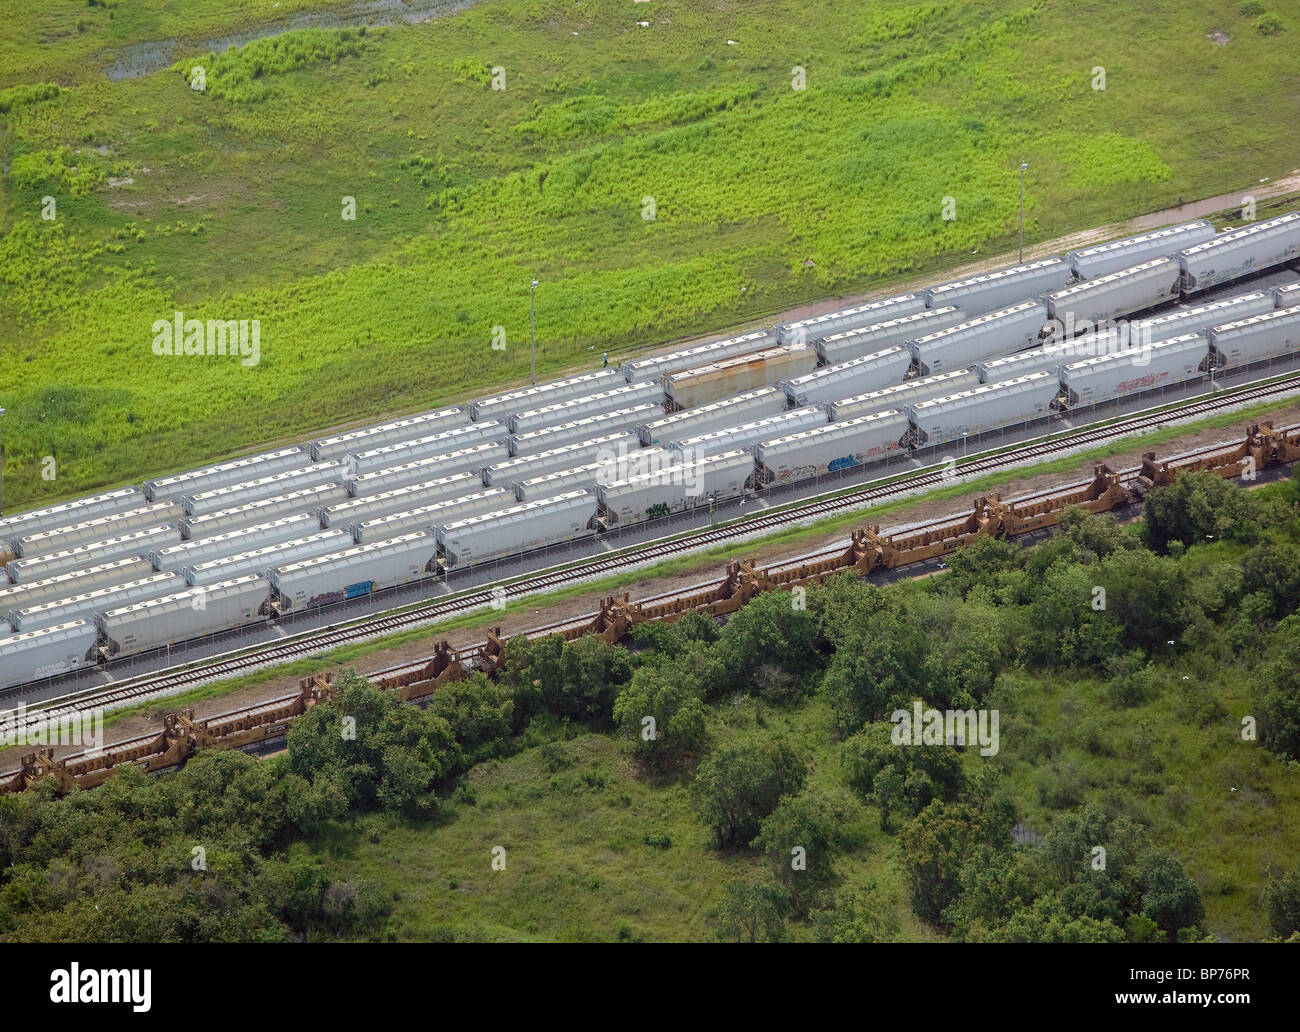 aerial view above railroad cars northeastern Mexico - Stock Image